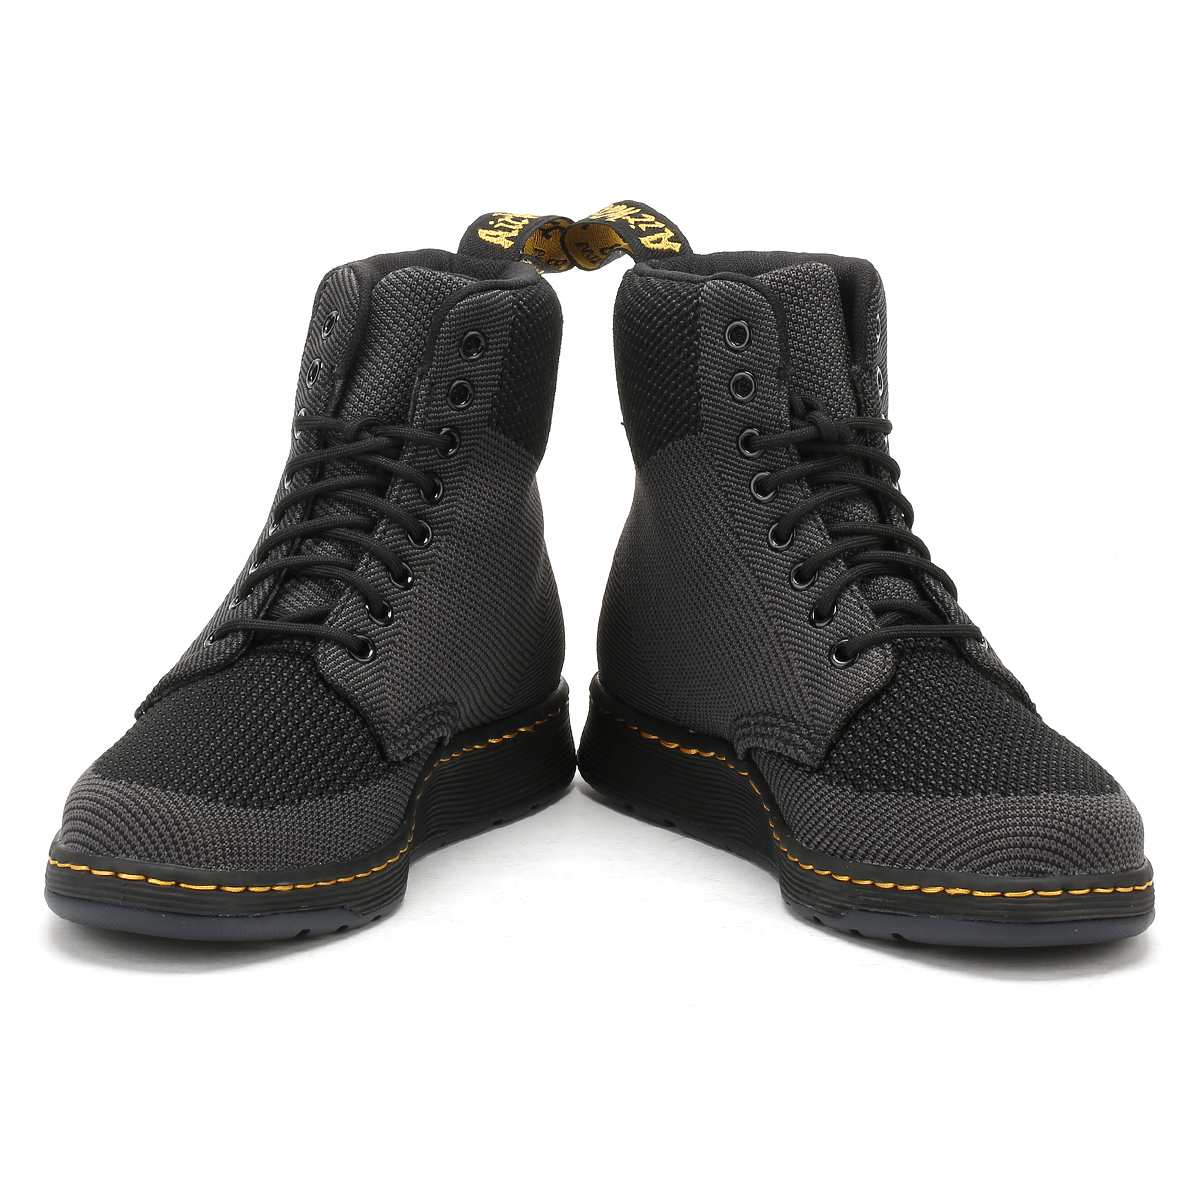 Dr. Dr. Dr. Martens Mens Black or Red Rigal Knit Boots Lace Up Casual Ankle shoes 1aa3f5